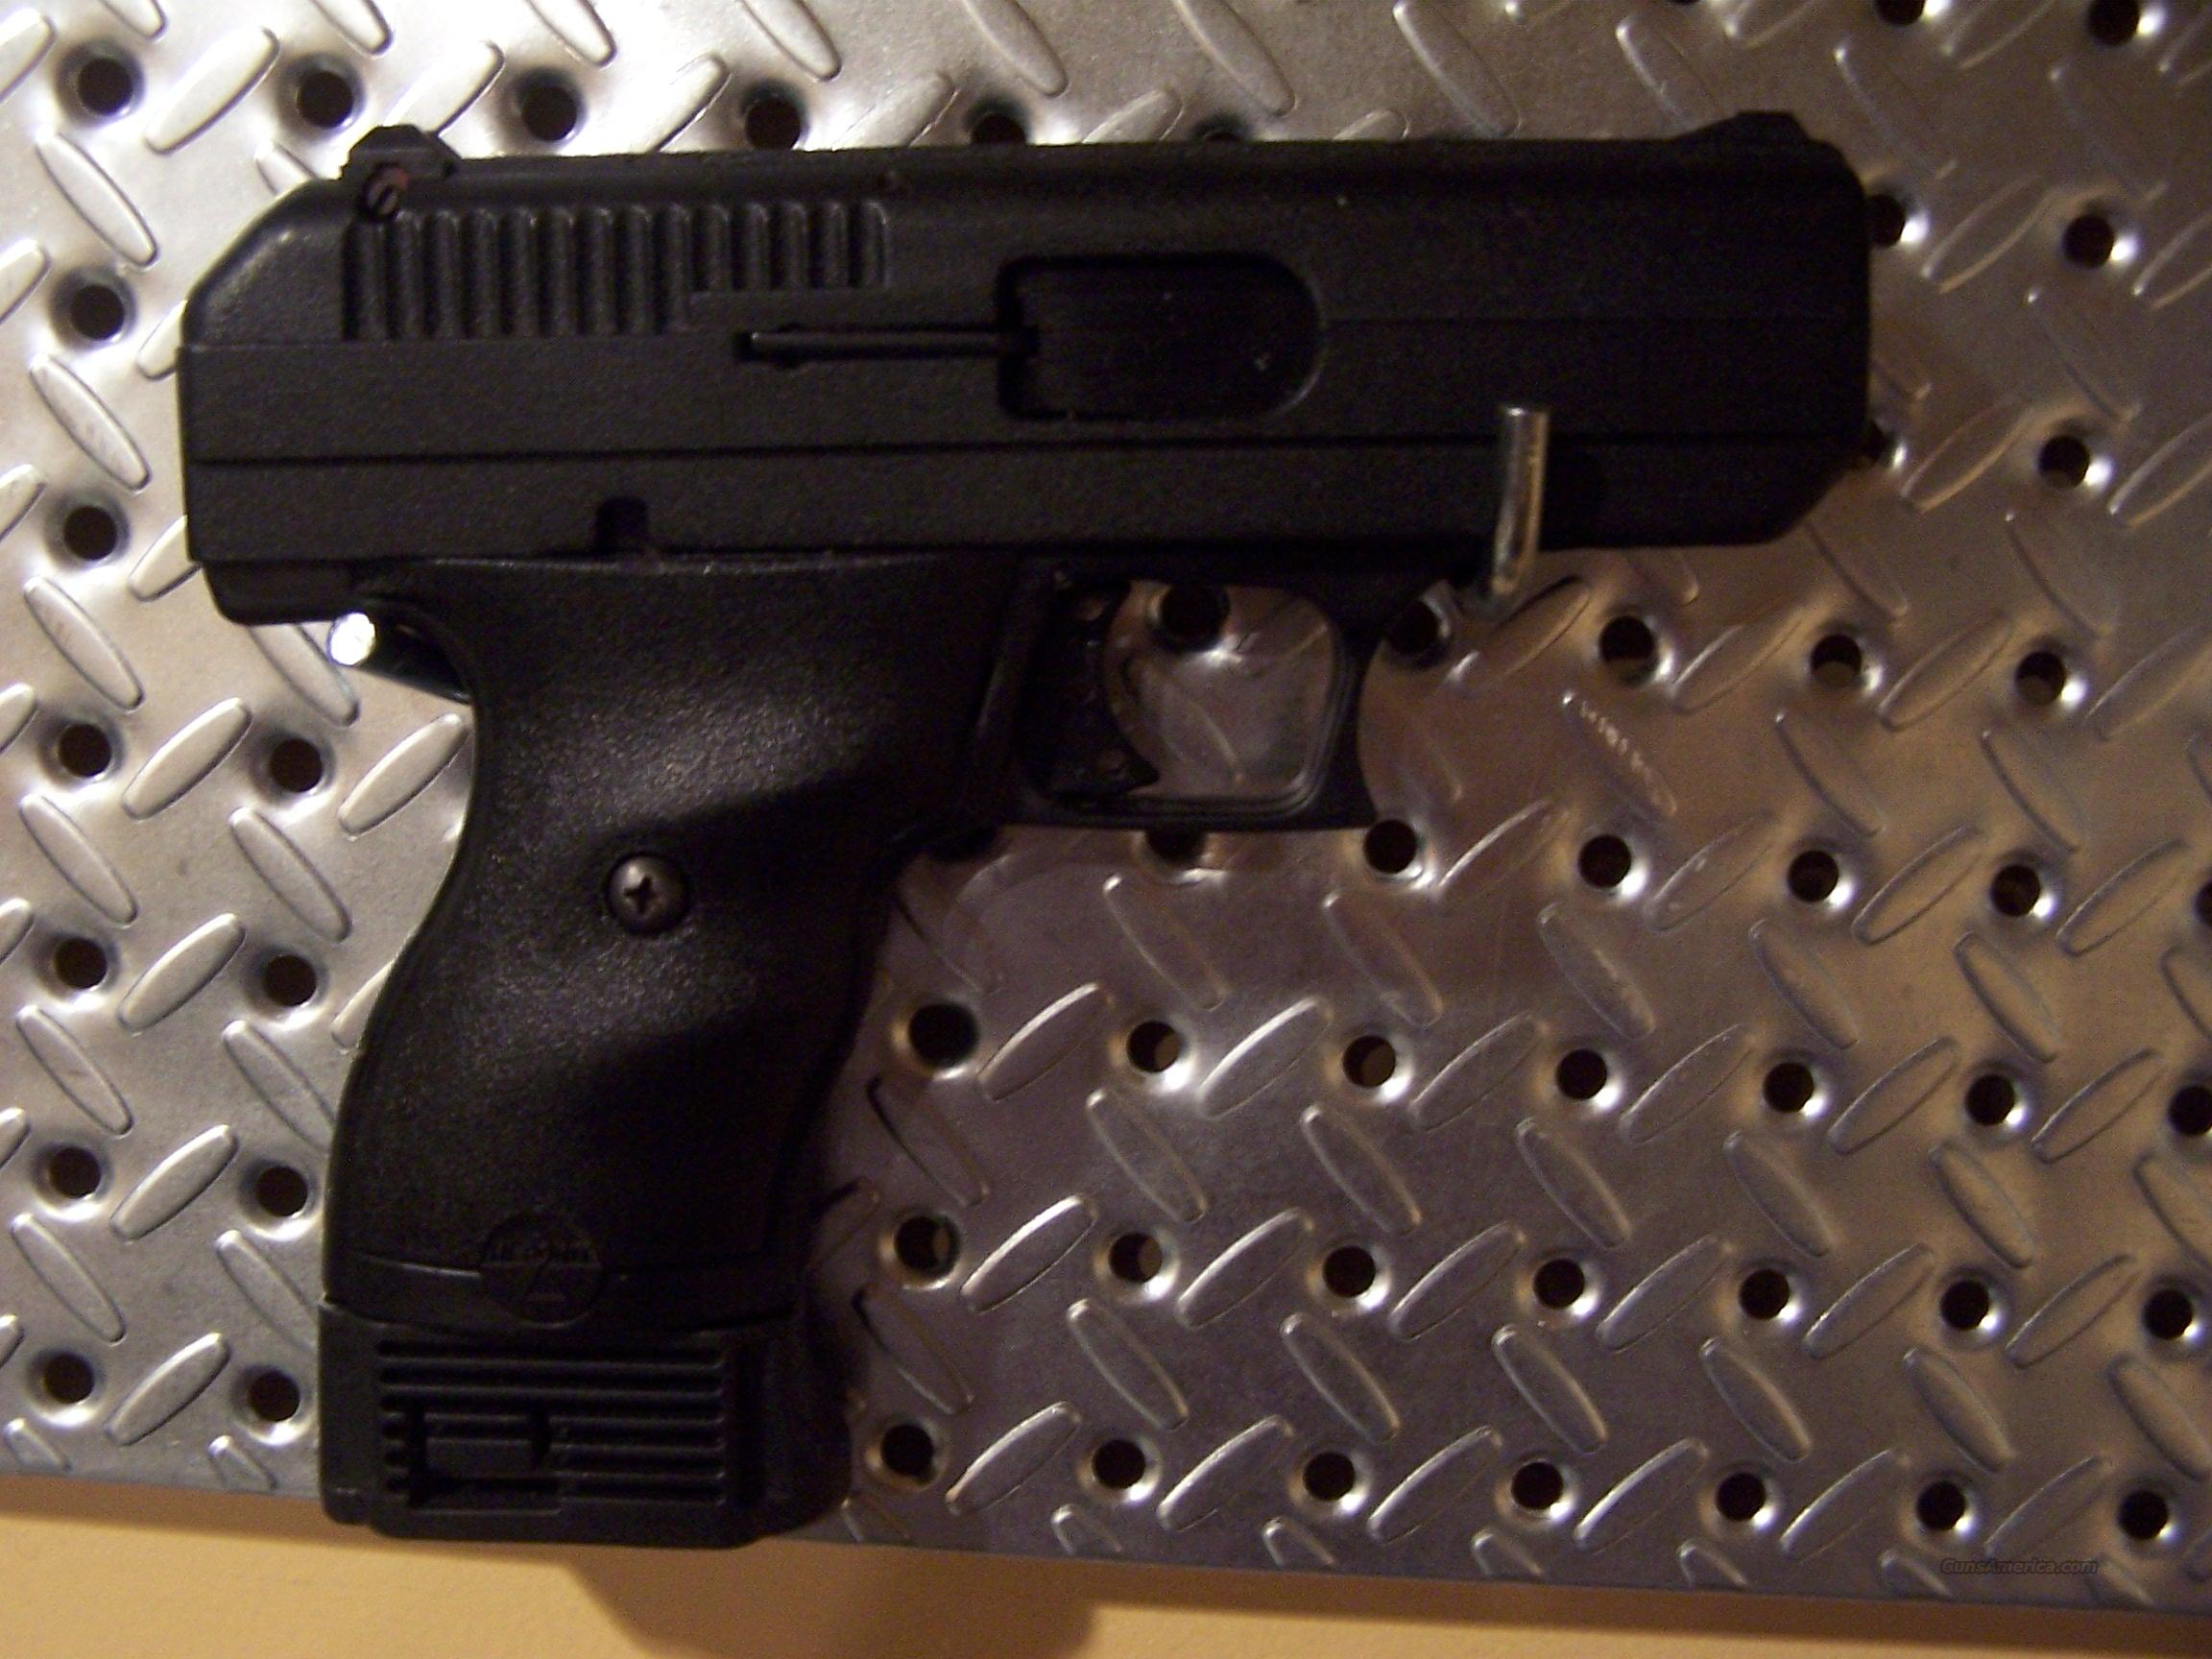 VERY NICE USED HI POINT C9 SEMI AUTO PISTOL. 9MM. EXTRAS INCLUDED  Guns > Pistols > Hi Point Pistols